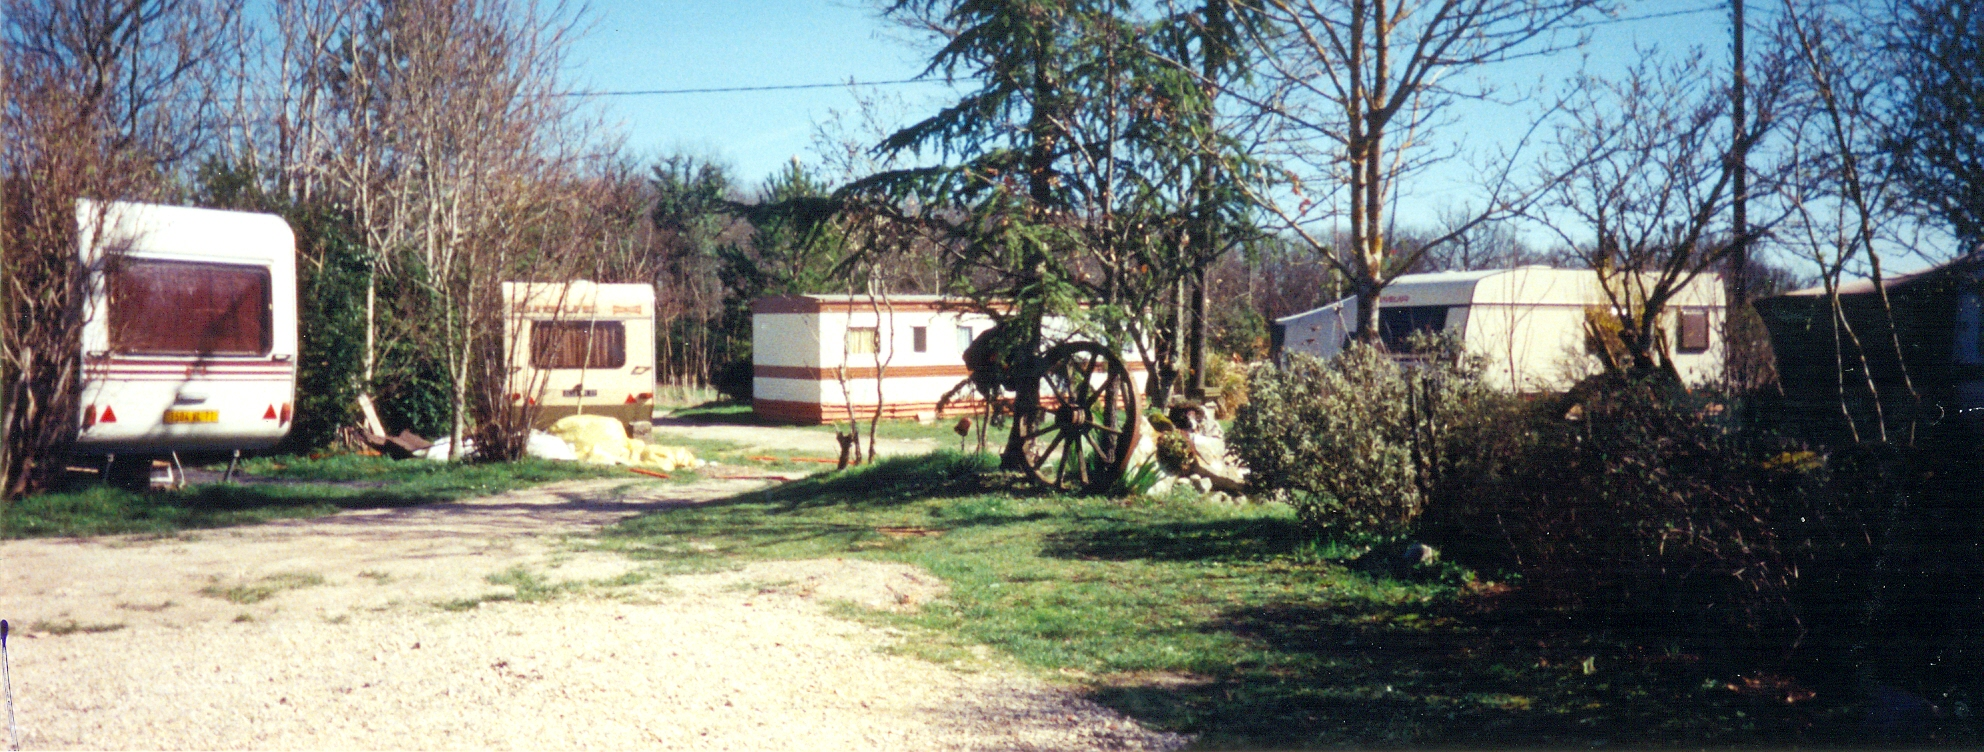 camping-le-baylou